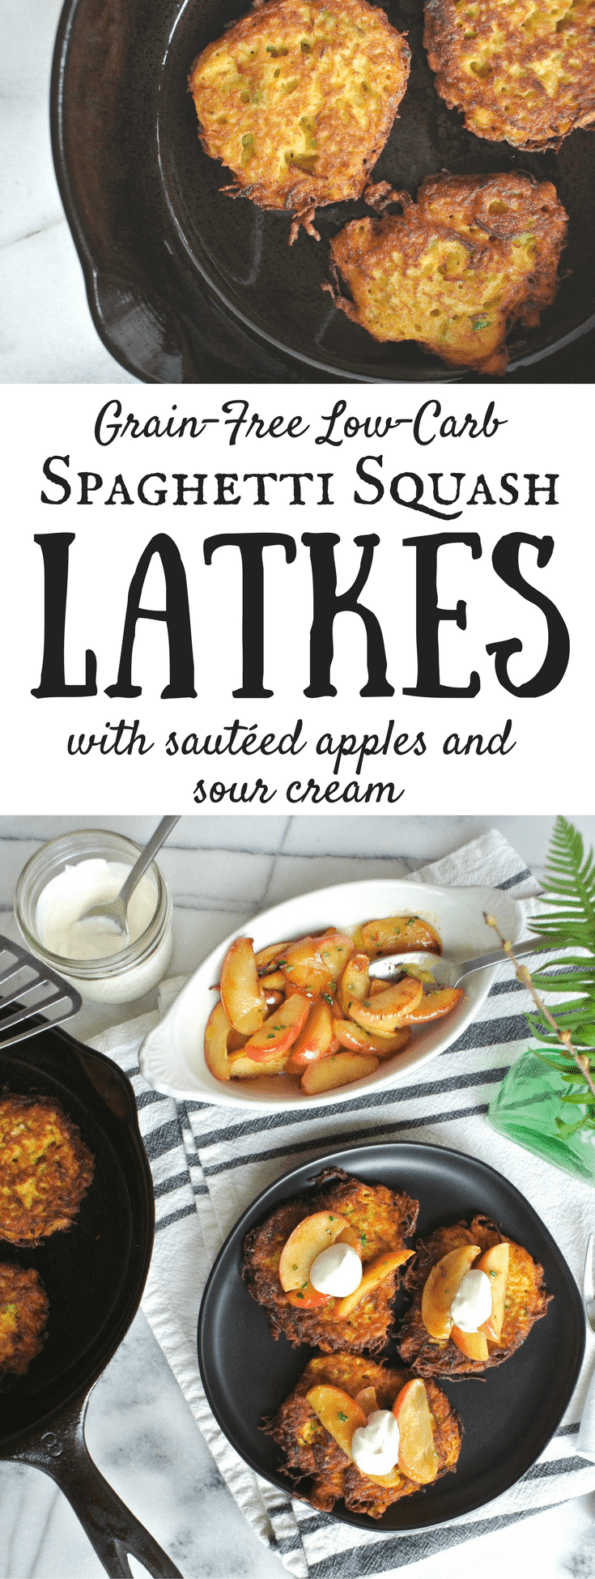 Spaghetti Squash Latkes - Grain-Free And Low-Carb